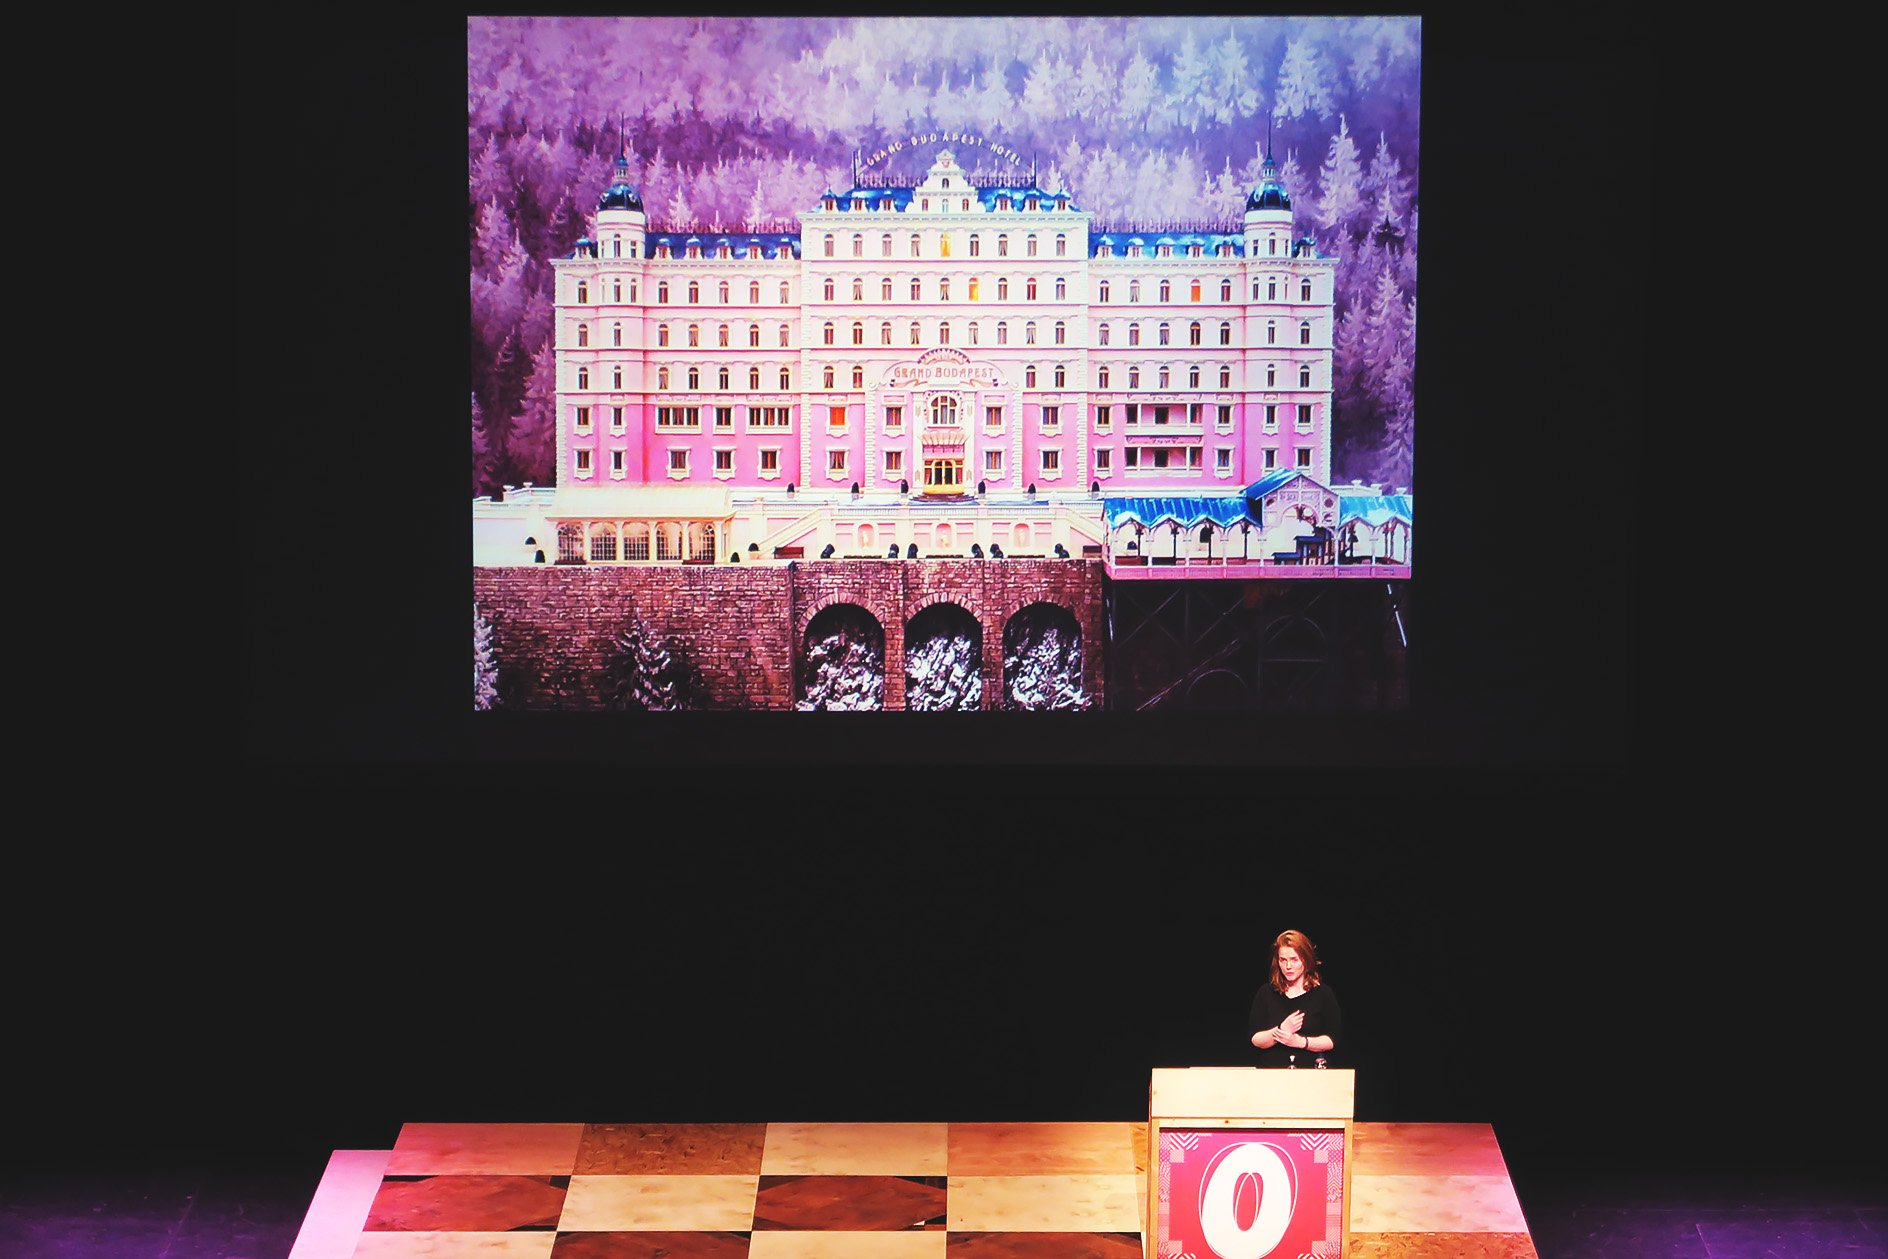 Annie Atkins at OFFSET 2015 – The Grand Budapest Hotel